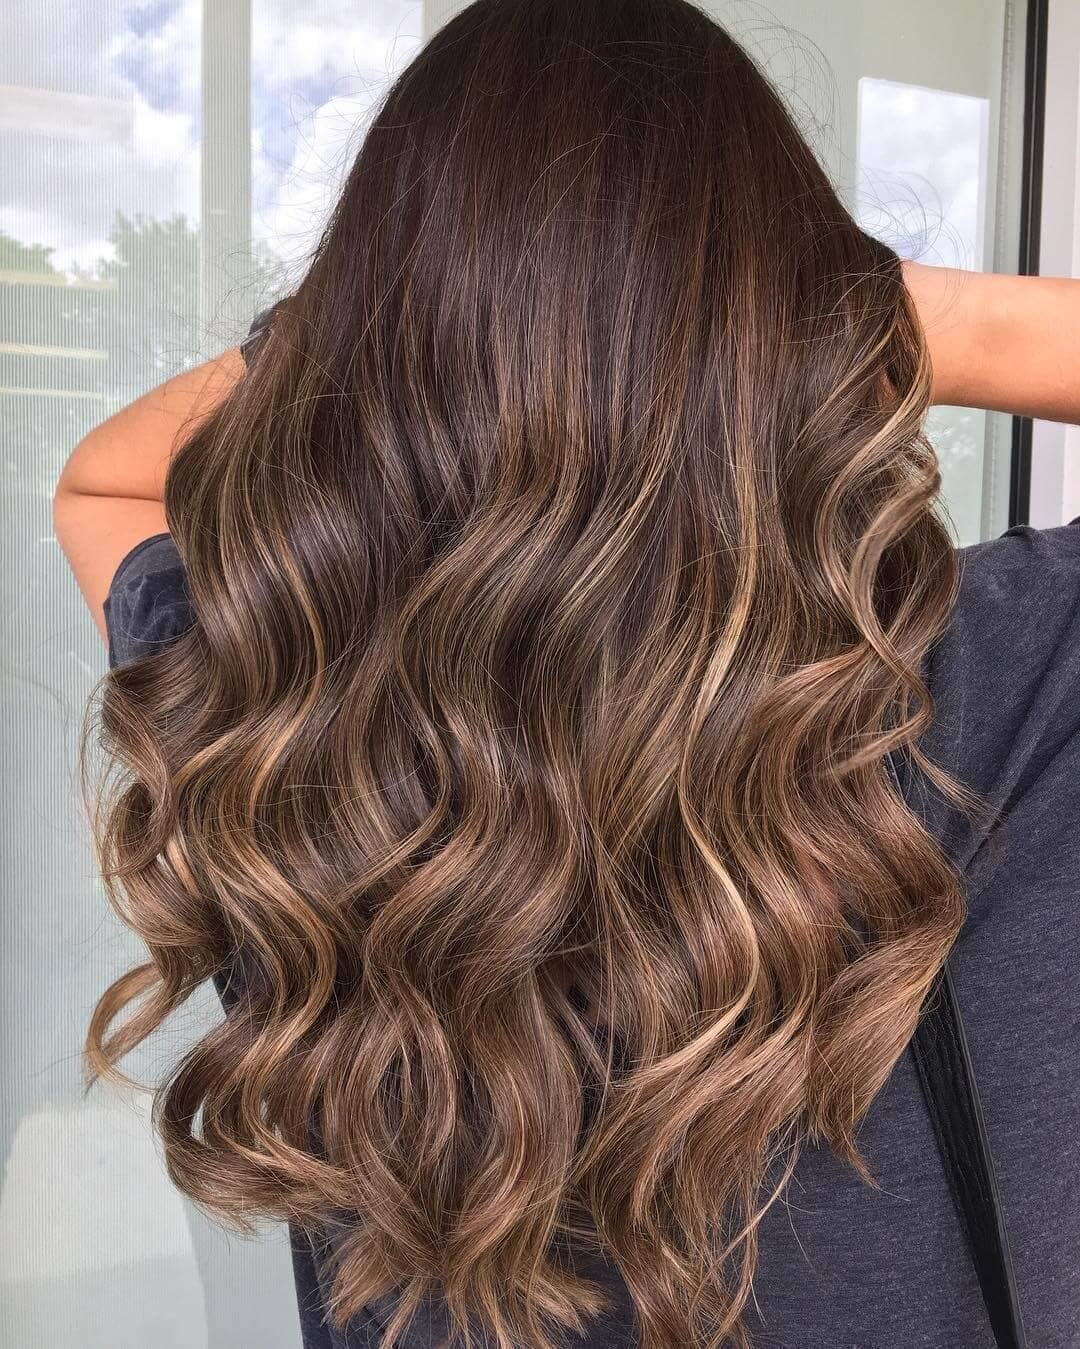 Curls With a Touch of Ombre